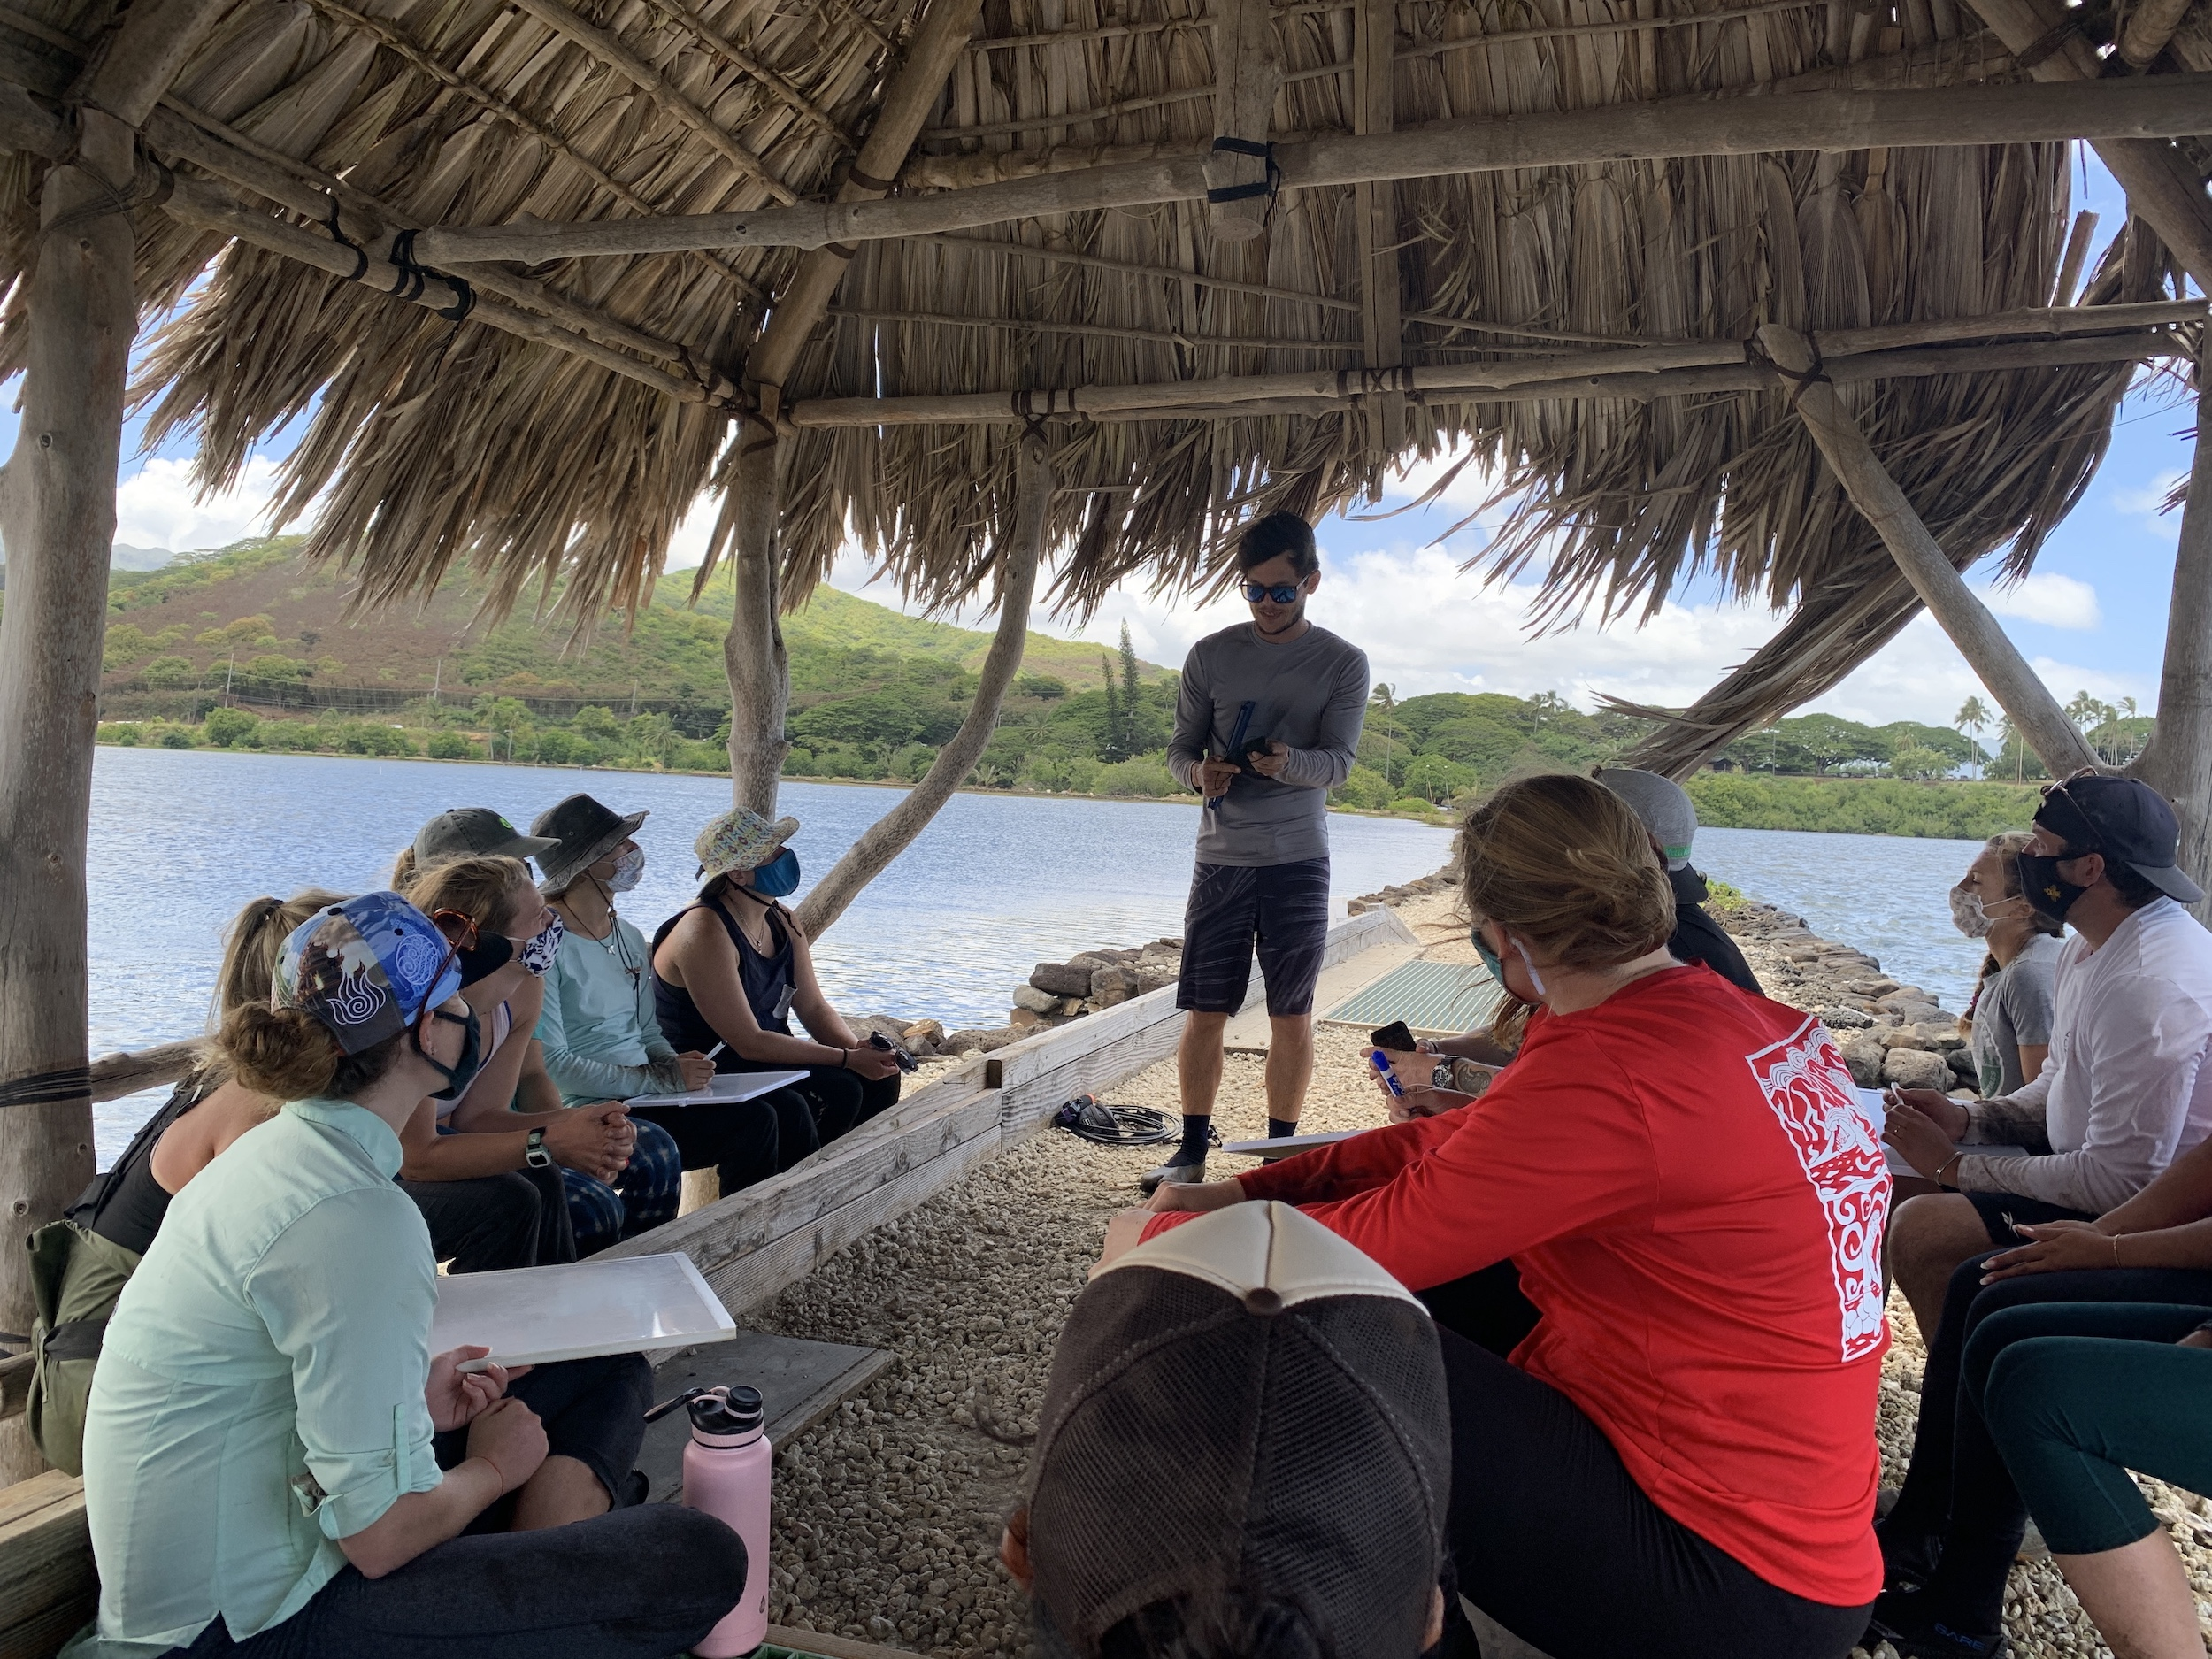 From the wall of Heʻeia Fishpond, MBGP students learn about the history of the Heʻeia ahupuaʻa from Fred Reppun.